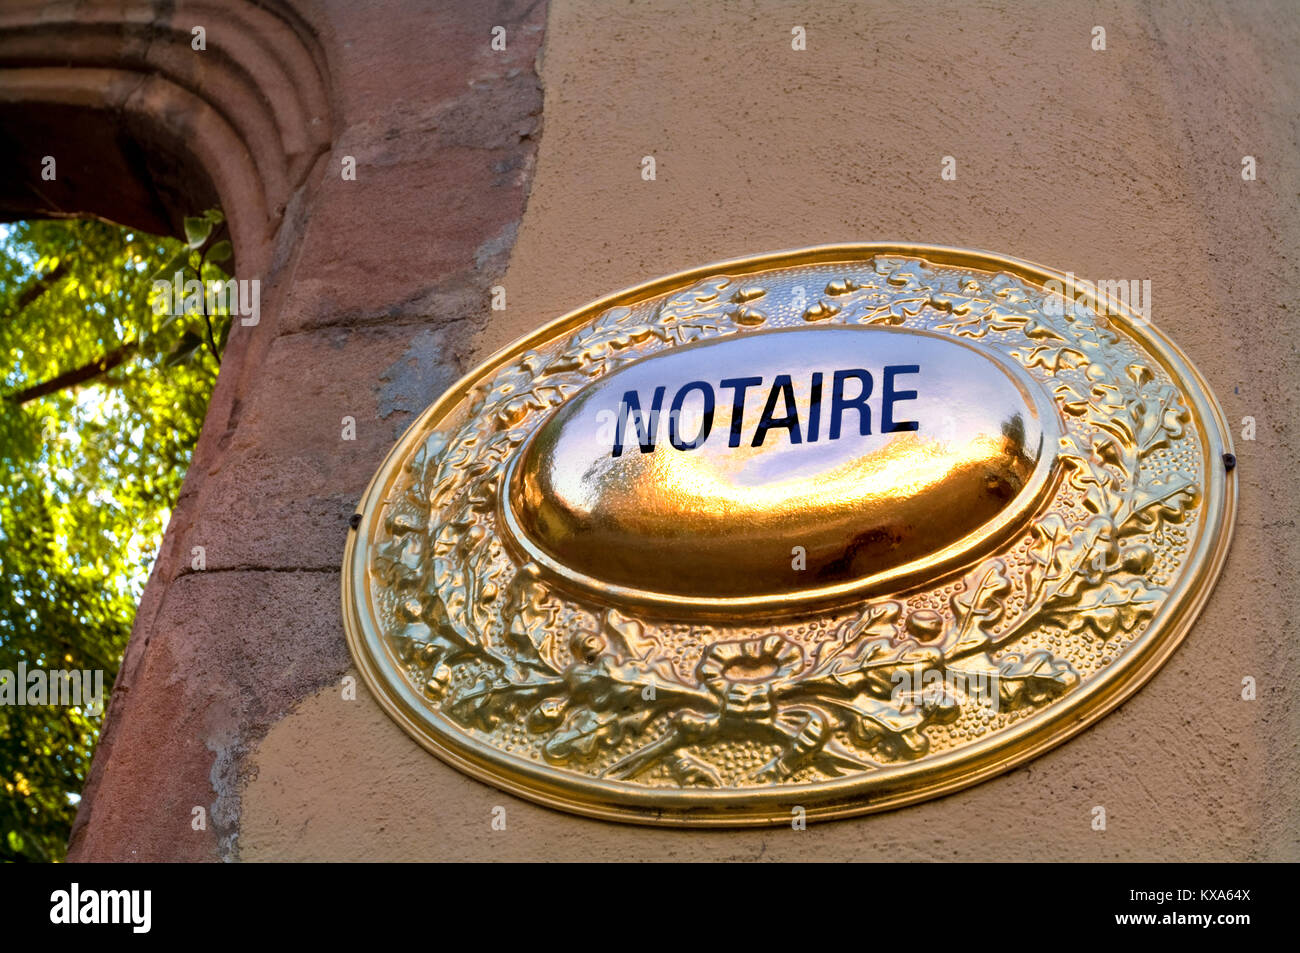 'Notaire' Notary Notarise Notarize legal office in France brass plaque sign at sunset imposing entrance - Stock Image